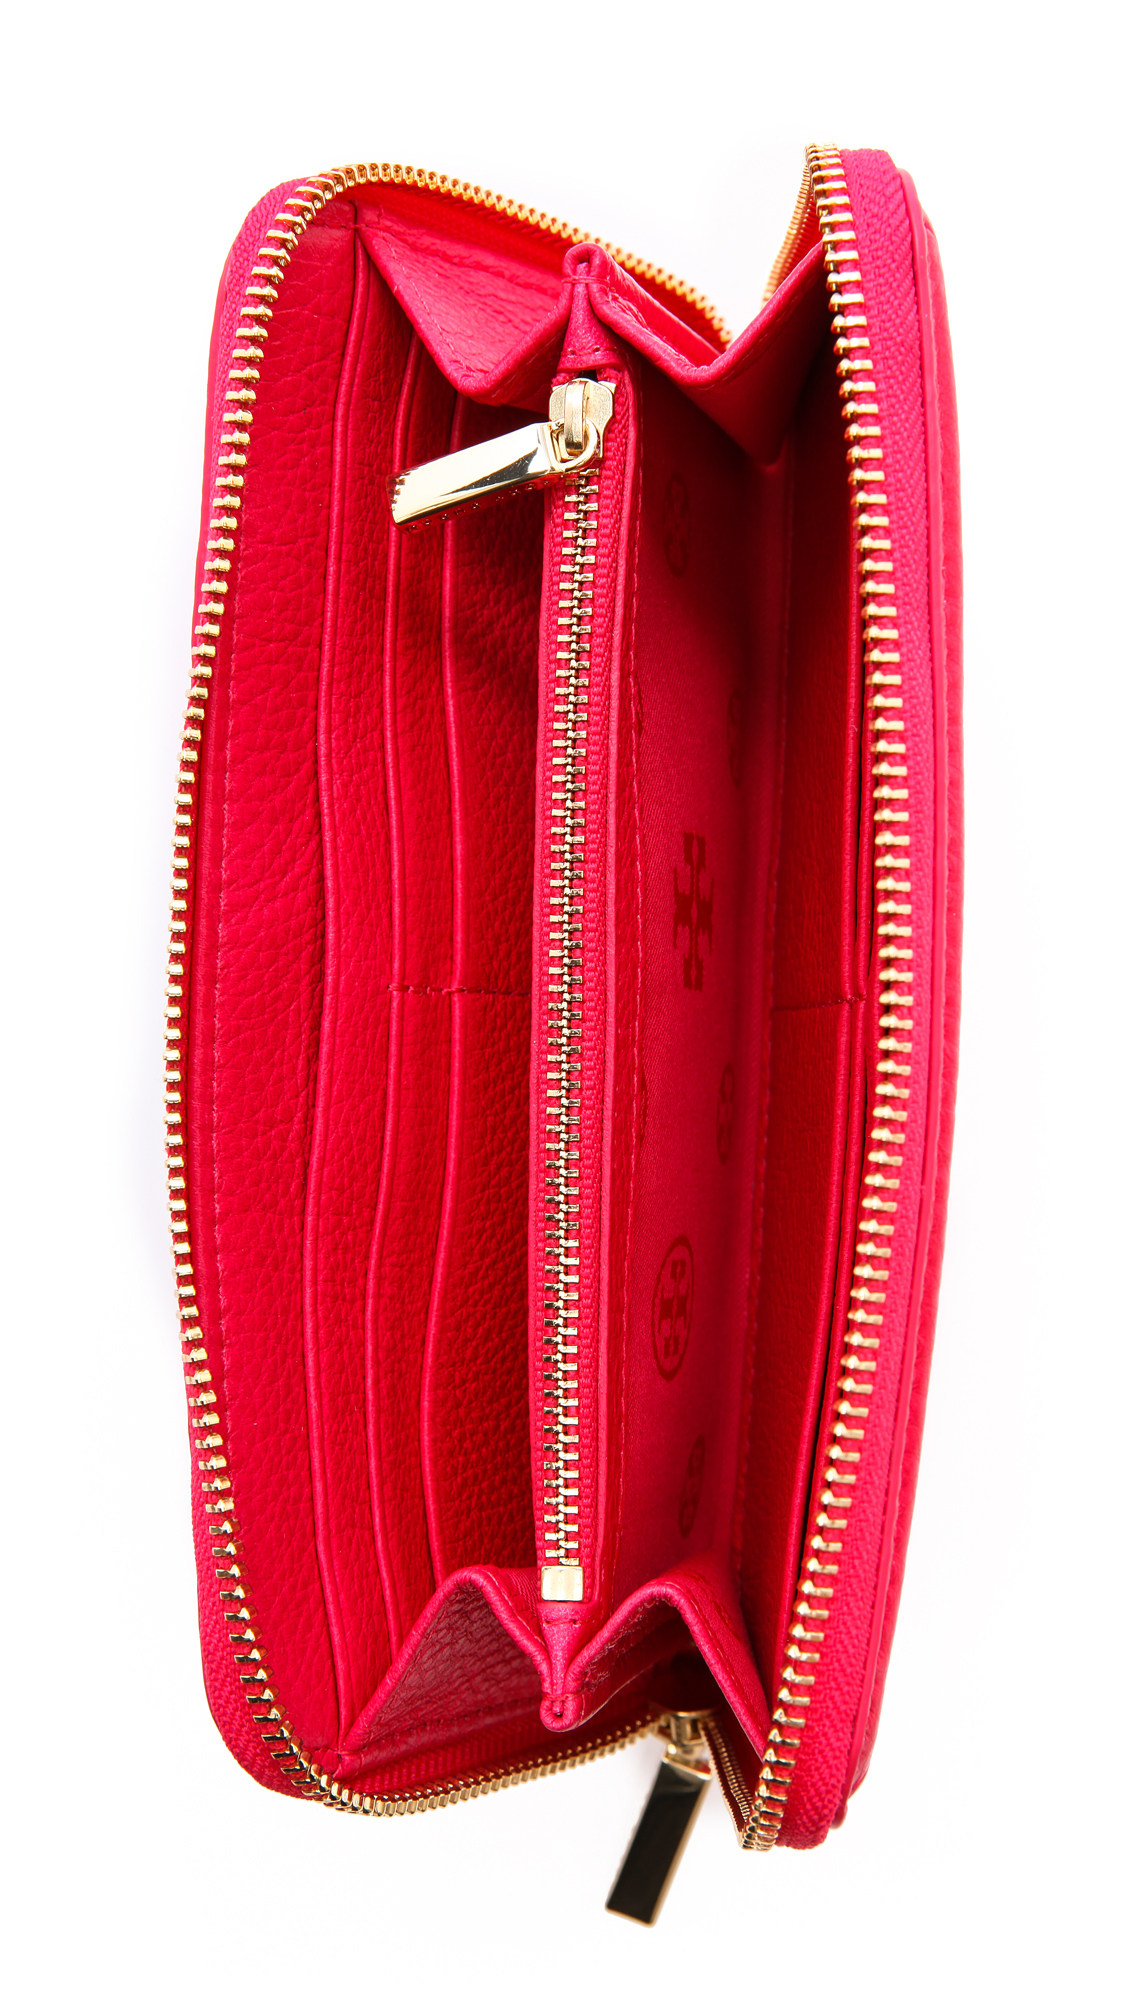 6518019d5f6 discount code for tory burch amanda zip continental wallet new carnival in  red lyst 45265 d9ff3